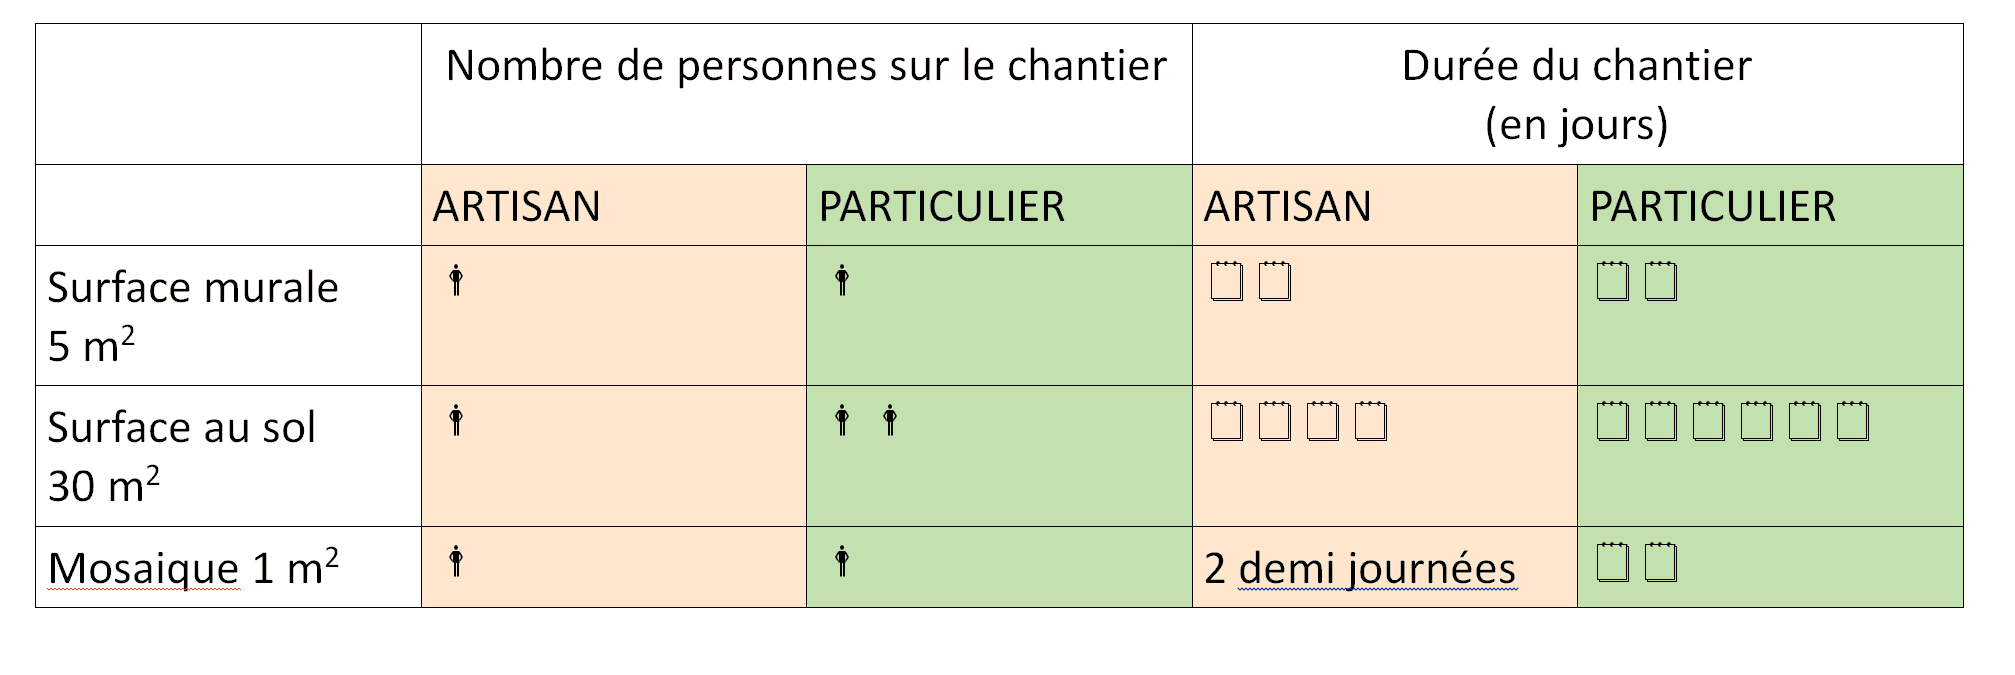 Guide d'estimation du temps du chantier :